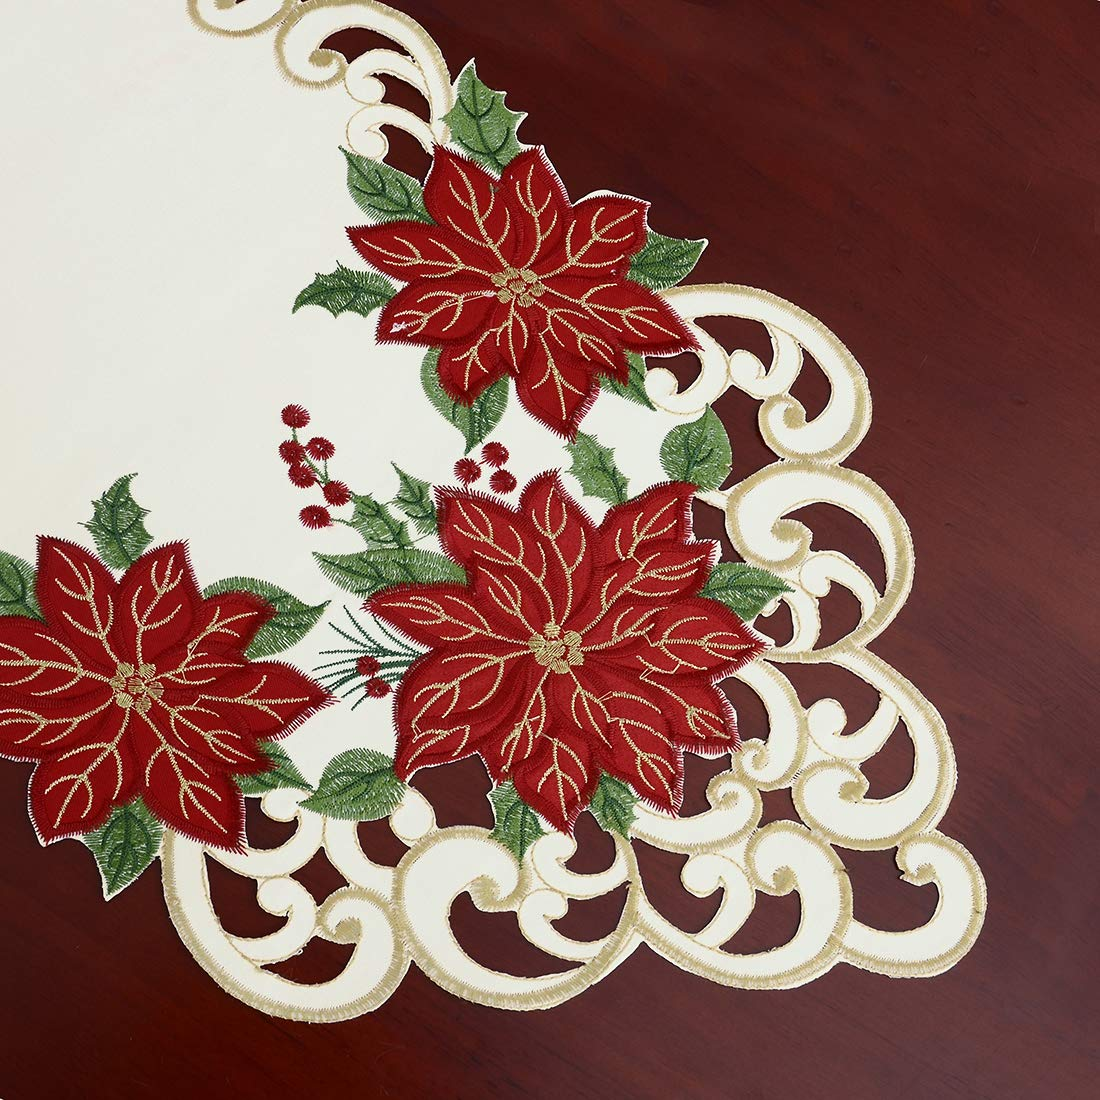 Simhomsen Christmas Holiday Poinsettia Table Runners Appliqu/é and Embroidery 13 /× 88 inch